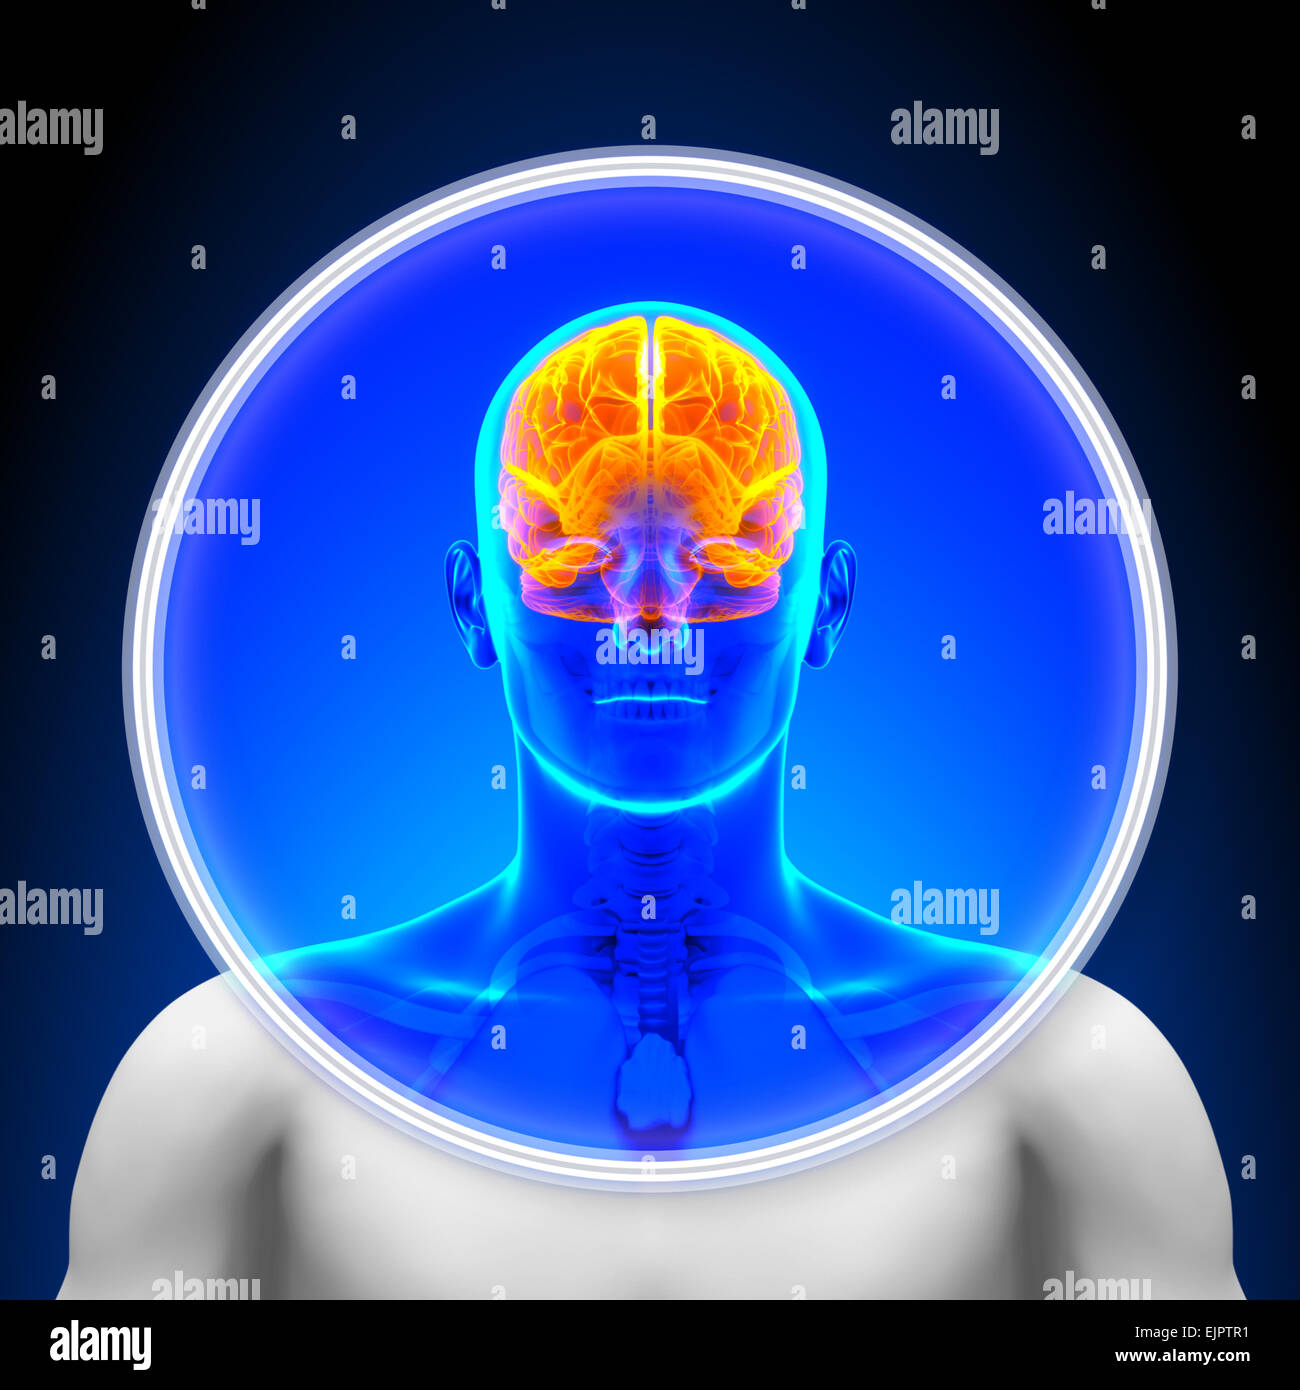 Medical X-Ray Scan - Brain - Stock Image